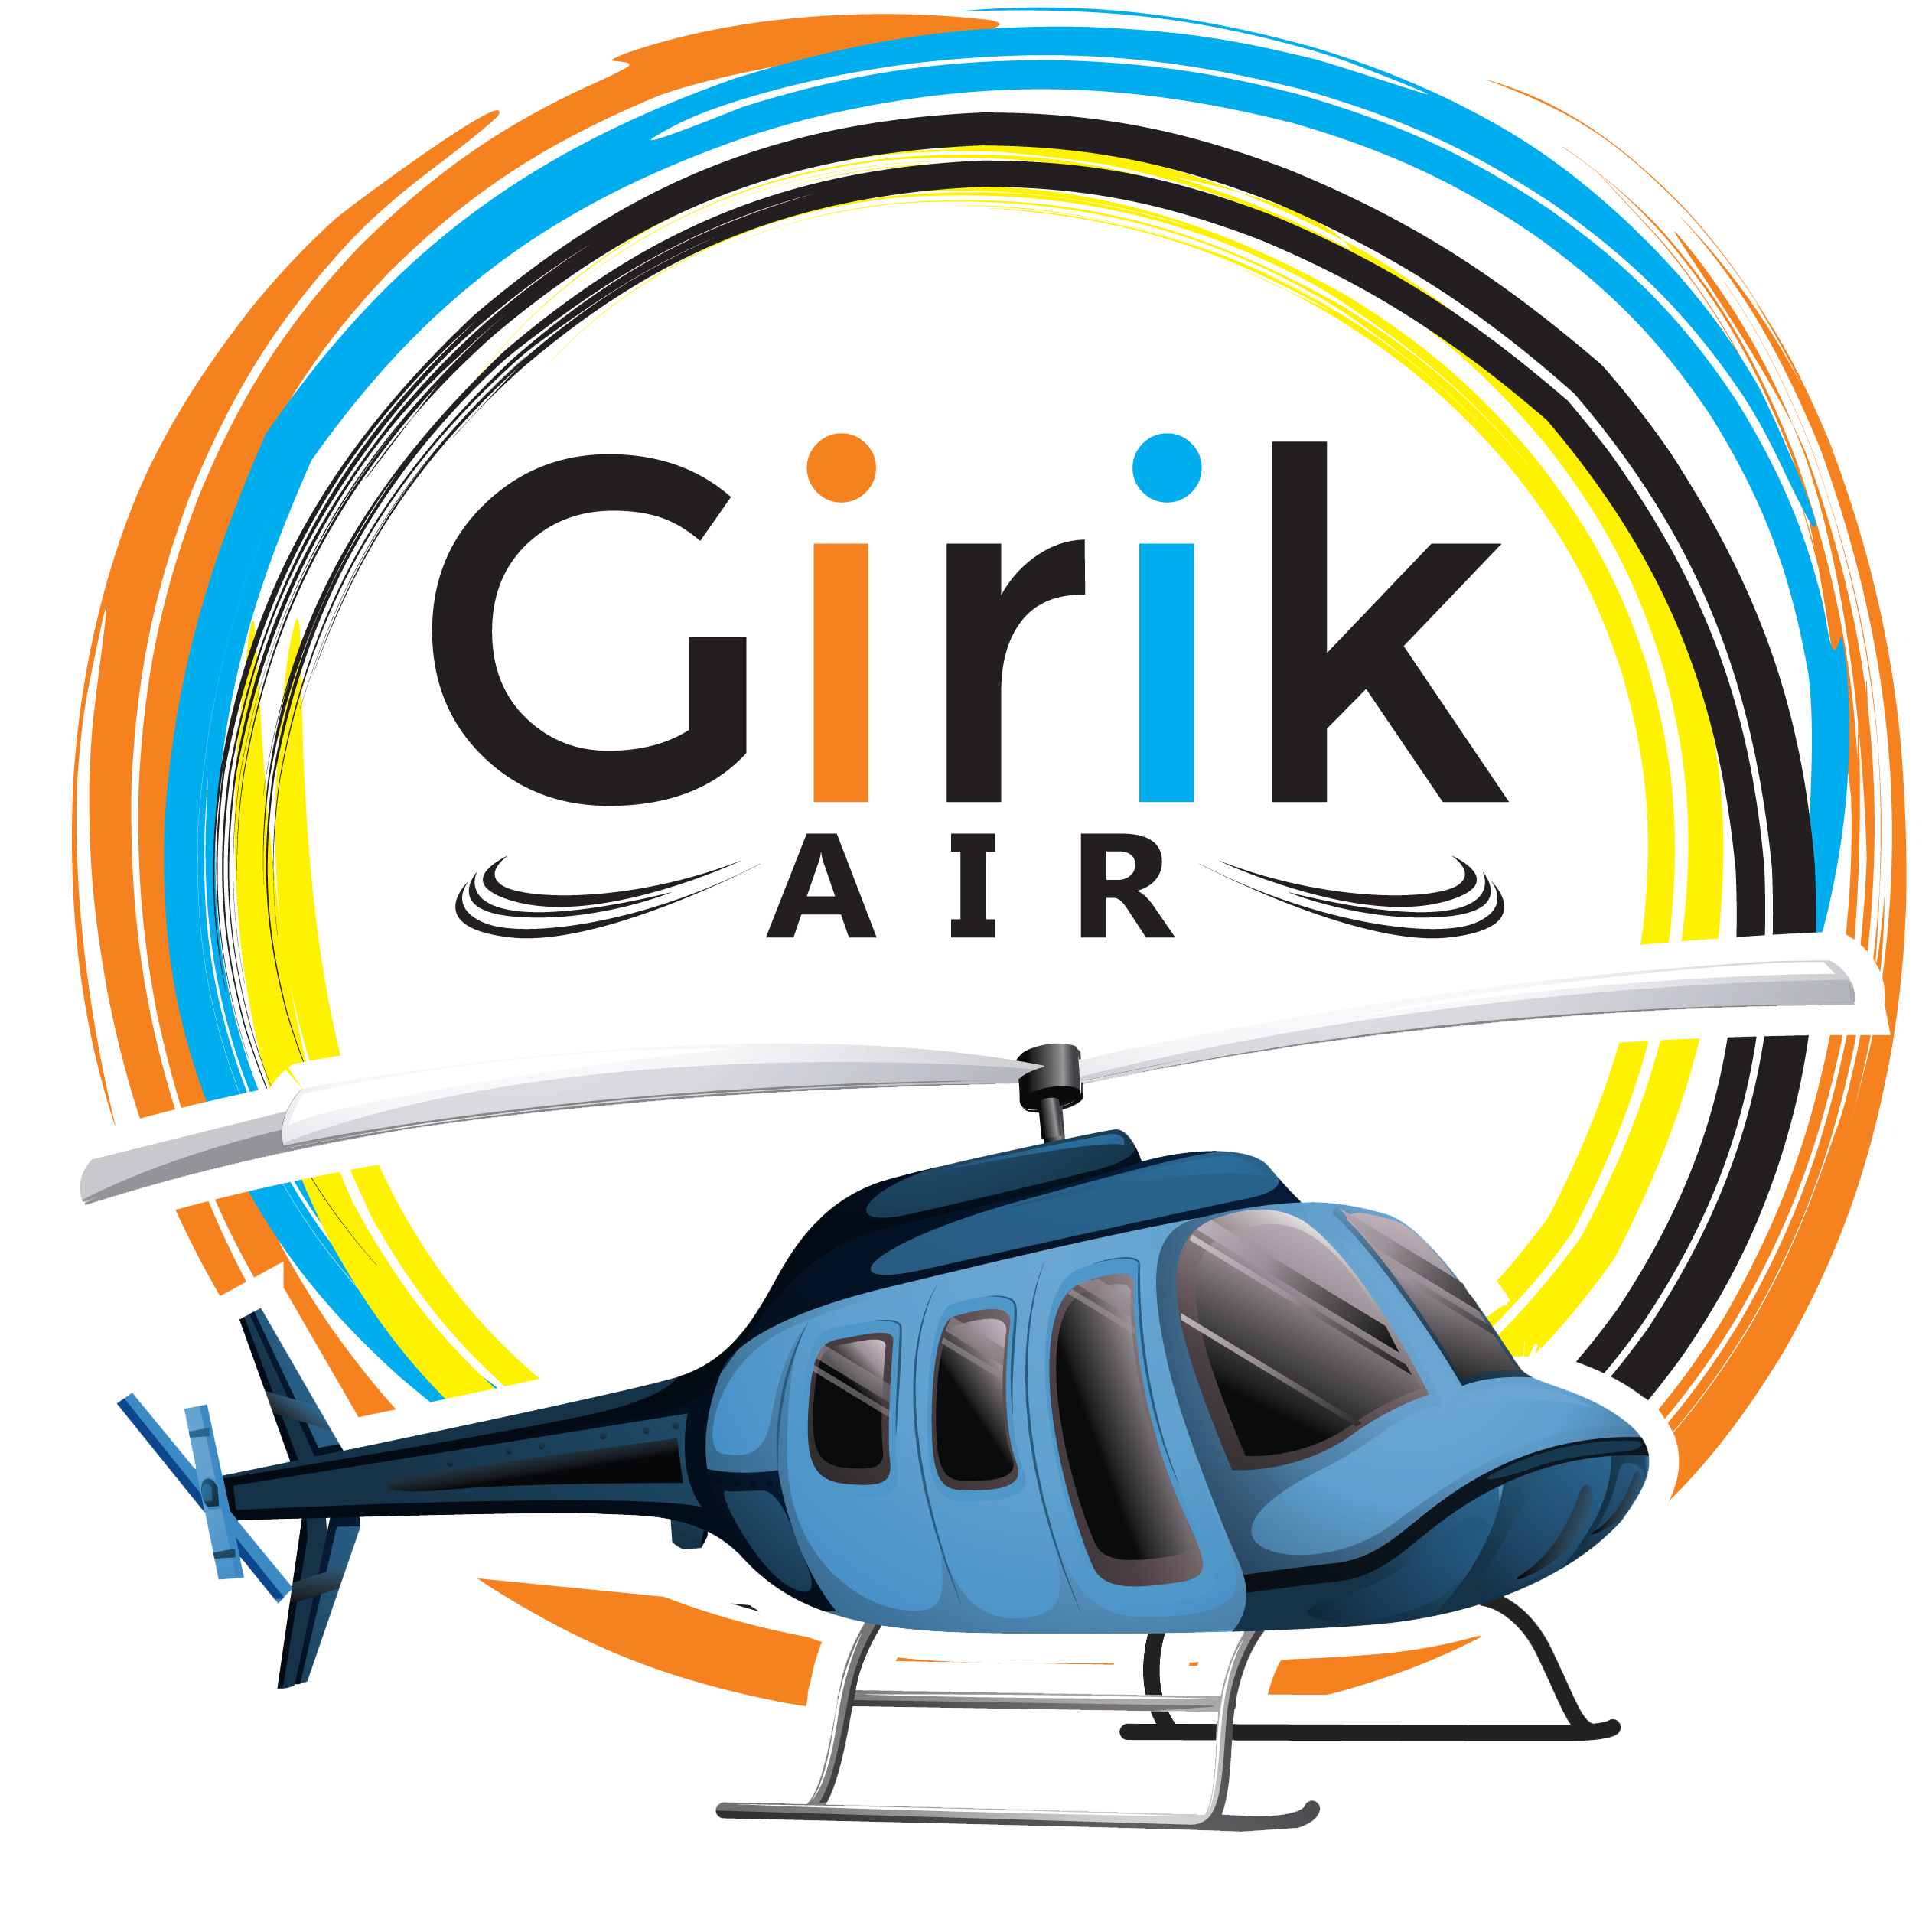 Top air charter services. Helicopter clipart ambulance helicopter